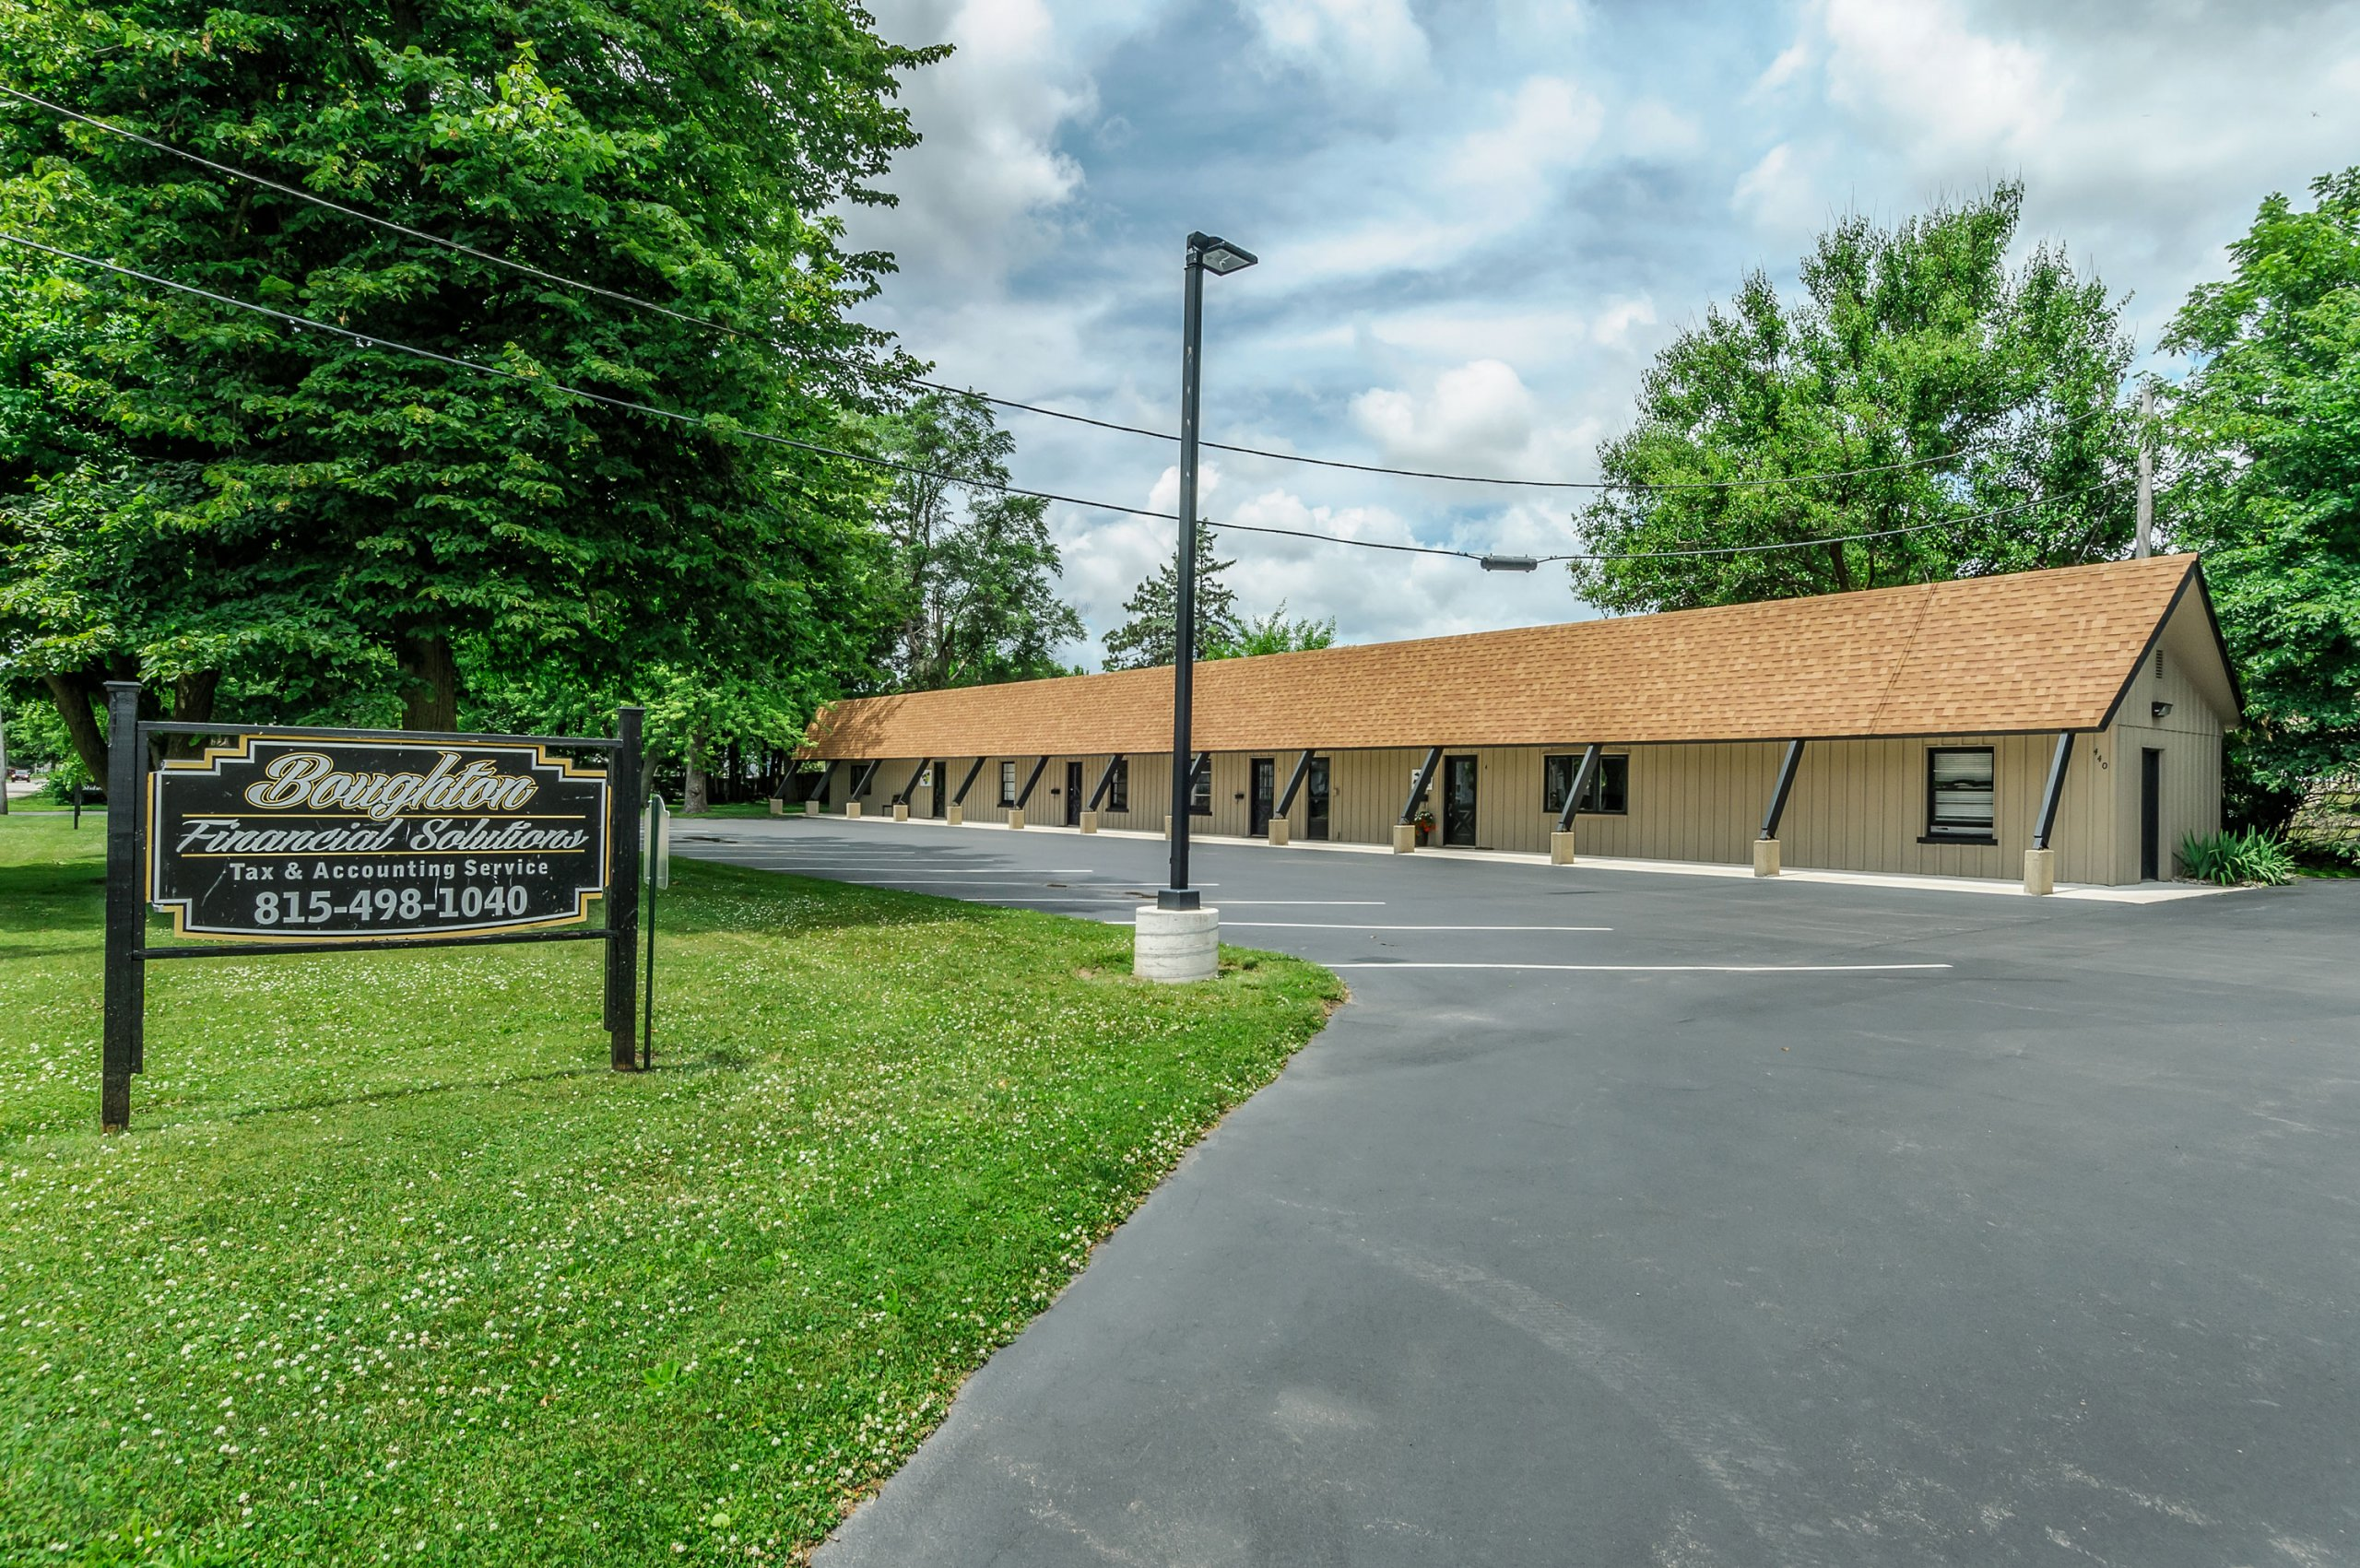 Business strip of office rentals - Somonauk, Illinois.